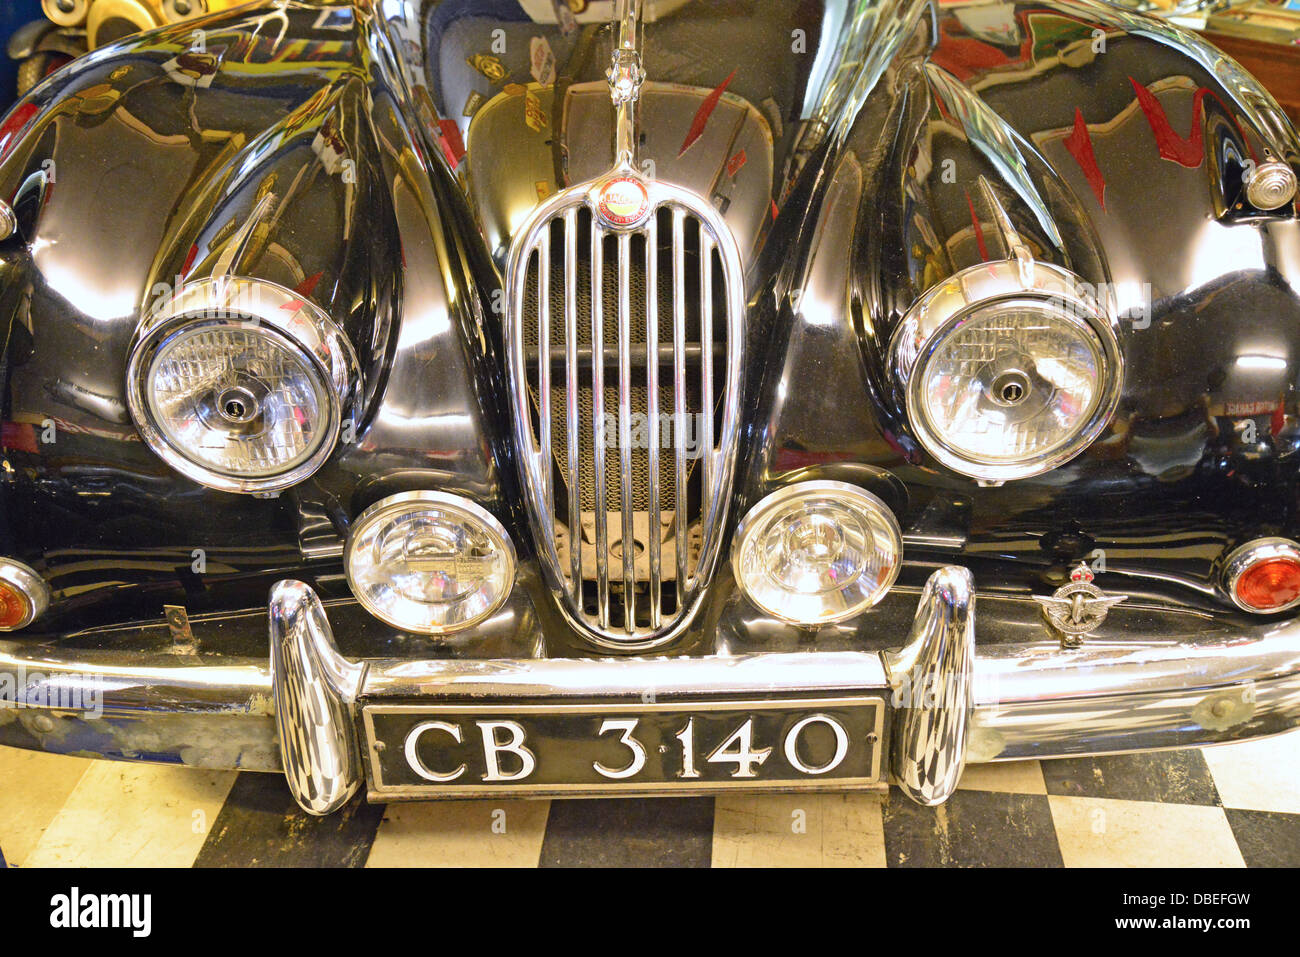 Vintage Jaguar at The Cotswold Motoring Museum, The Old Mill, Bourton-on-the-Water, Gloucestershire, England, United - Stock Image